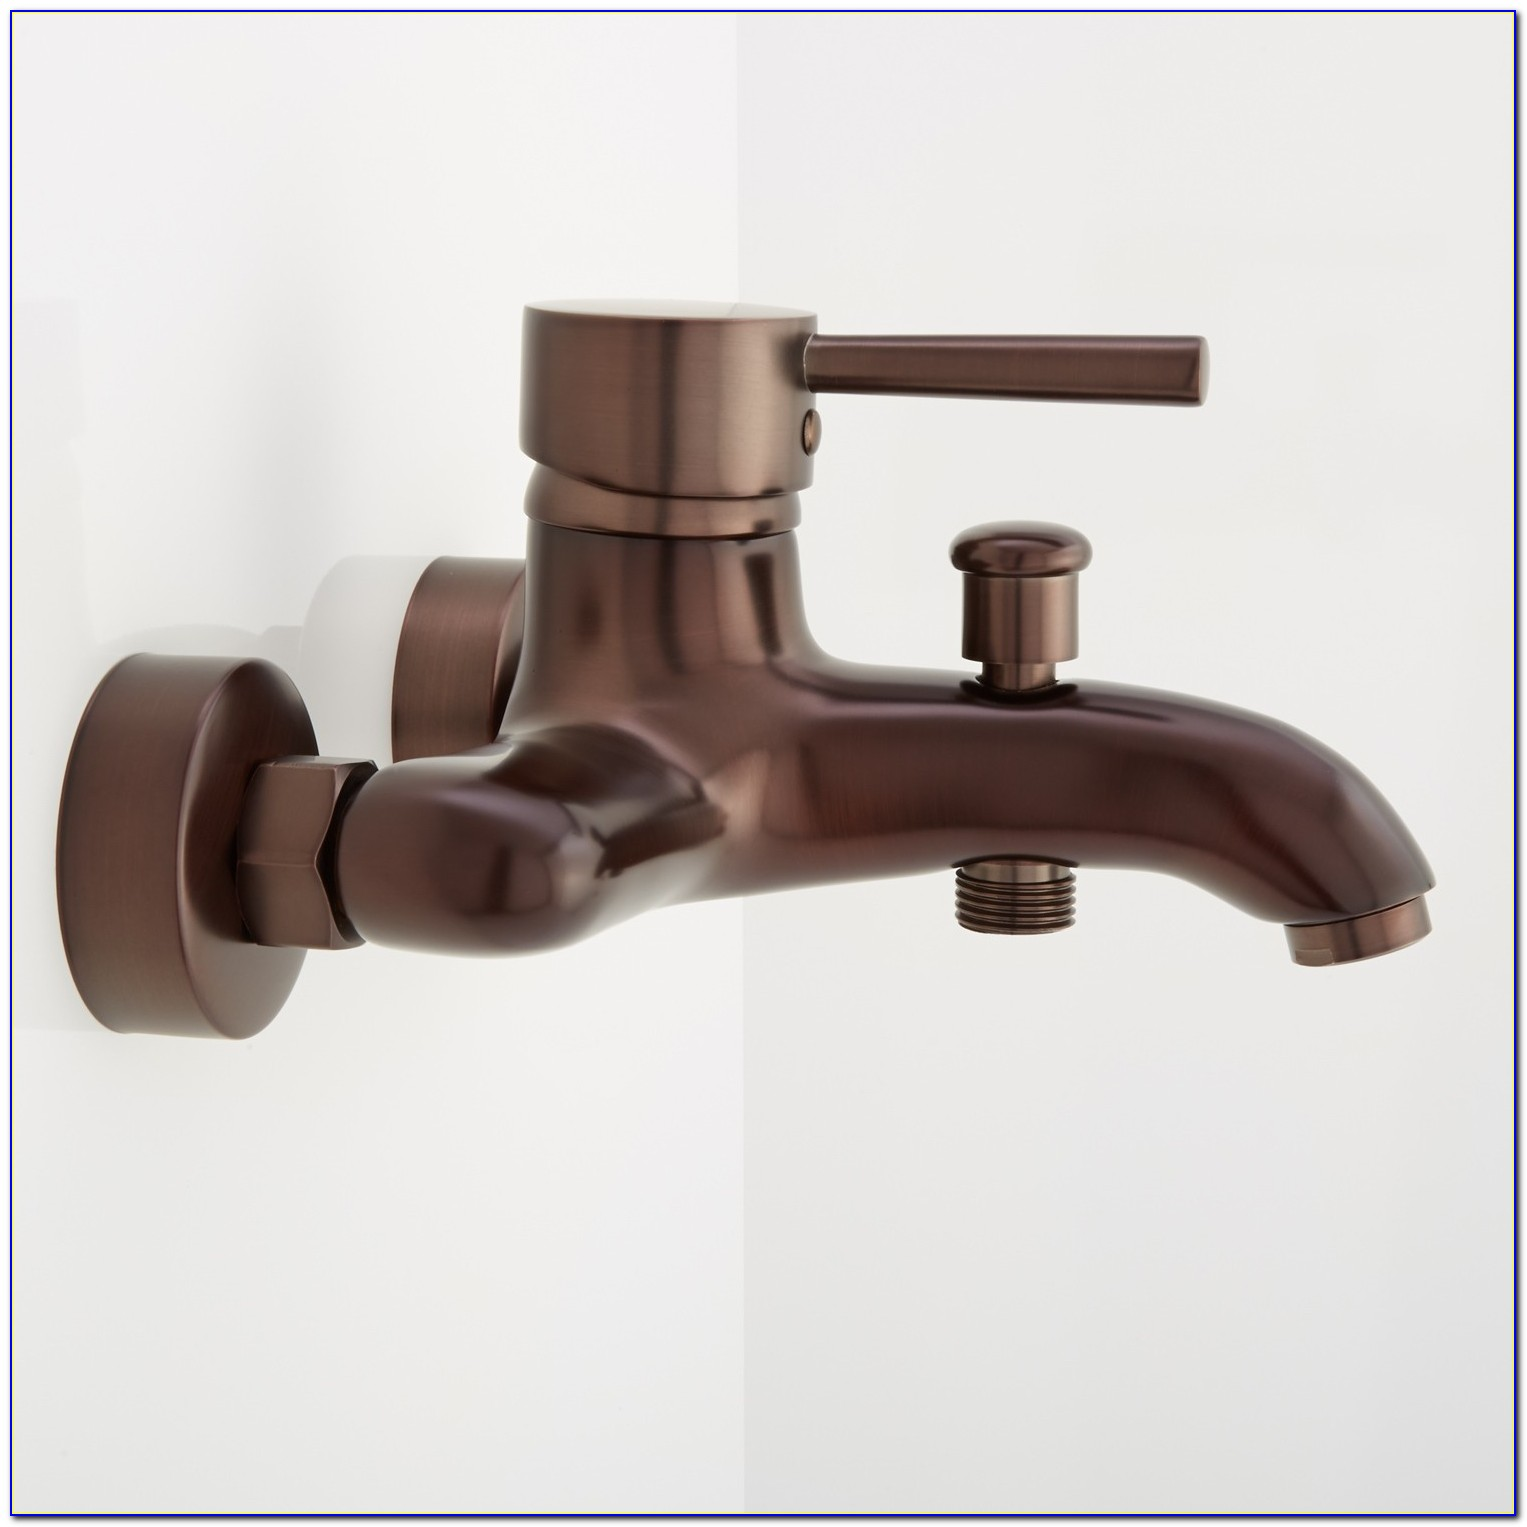 Wall Mount Tub Faucets With Hand Shower